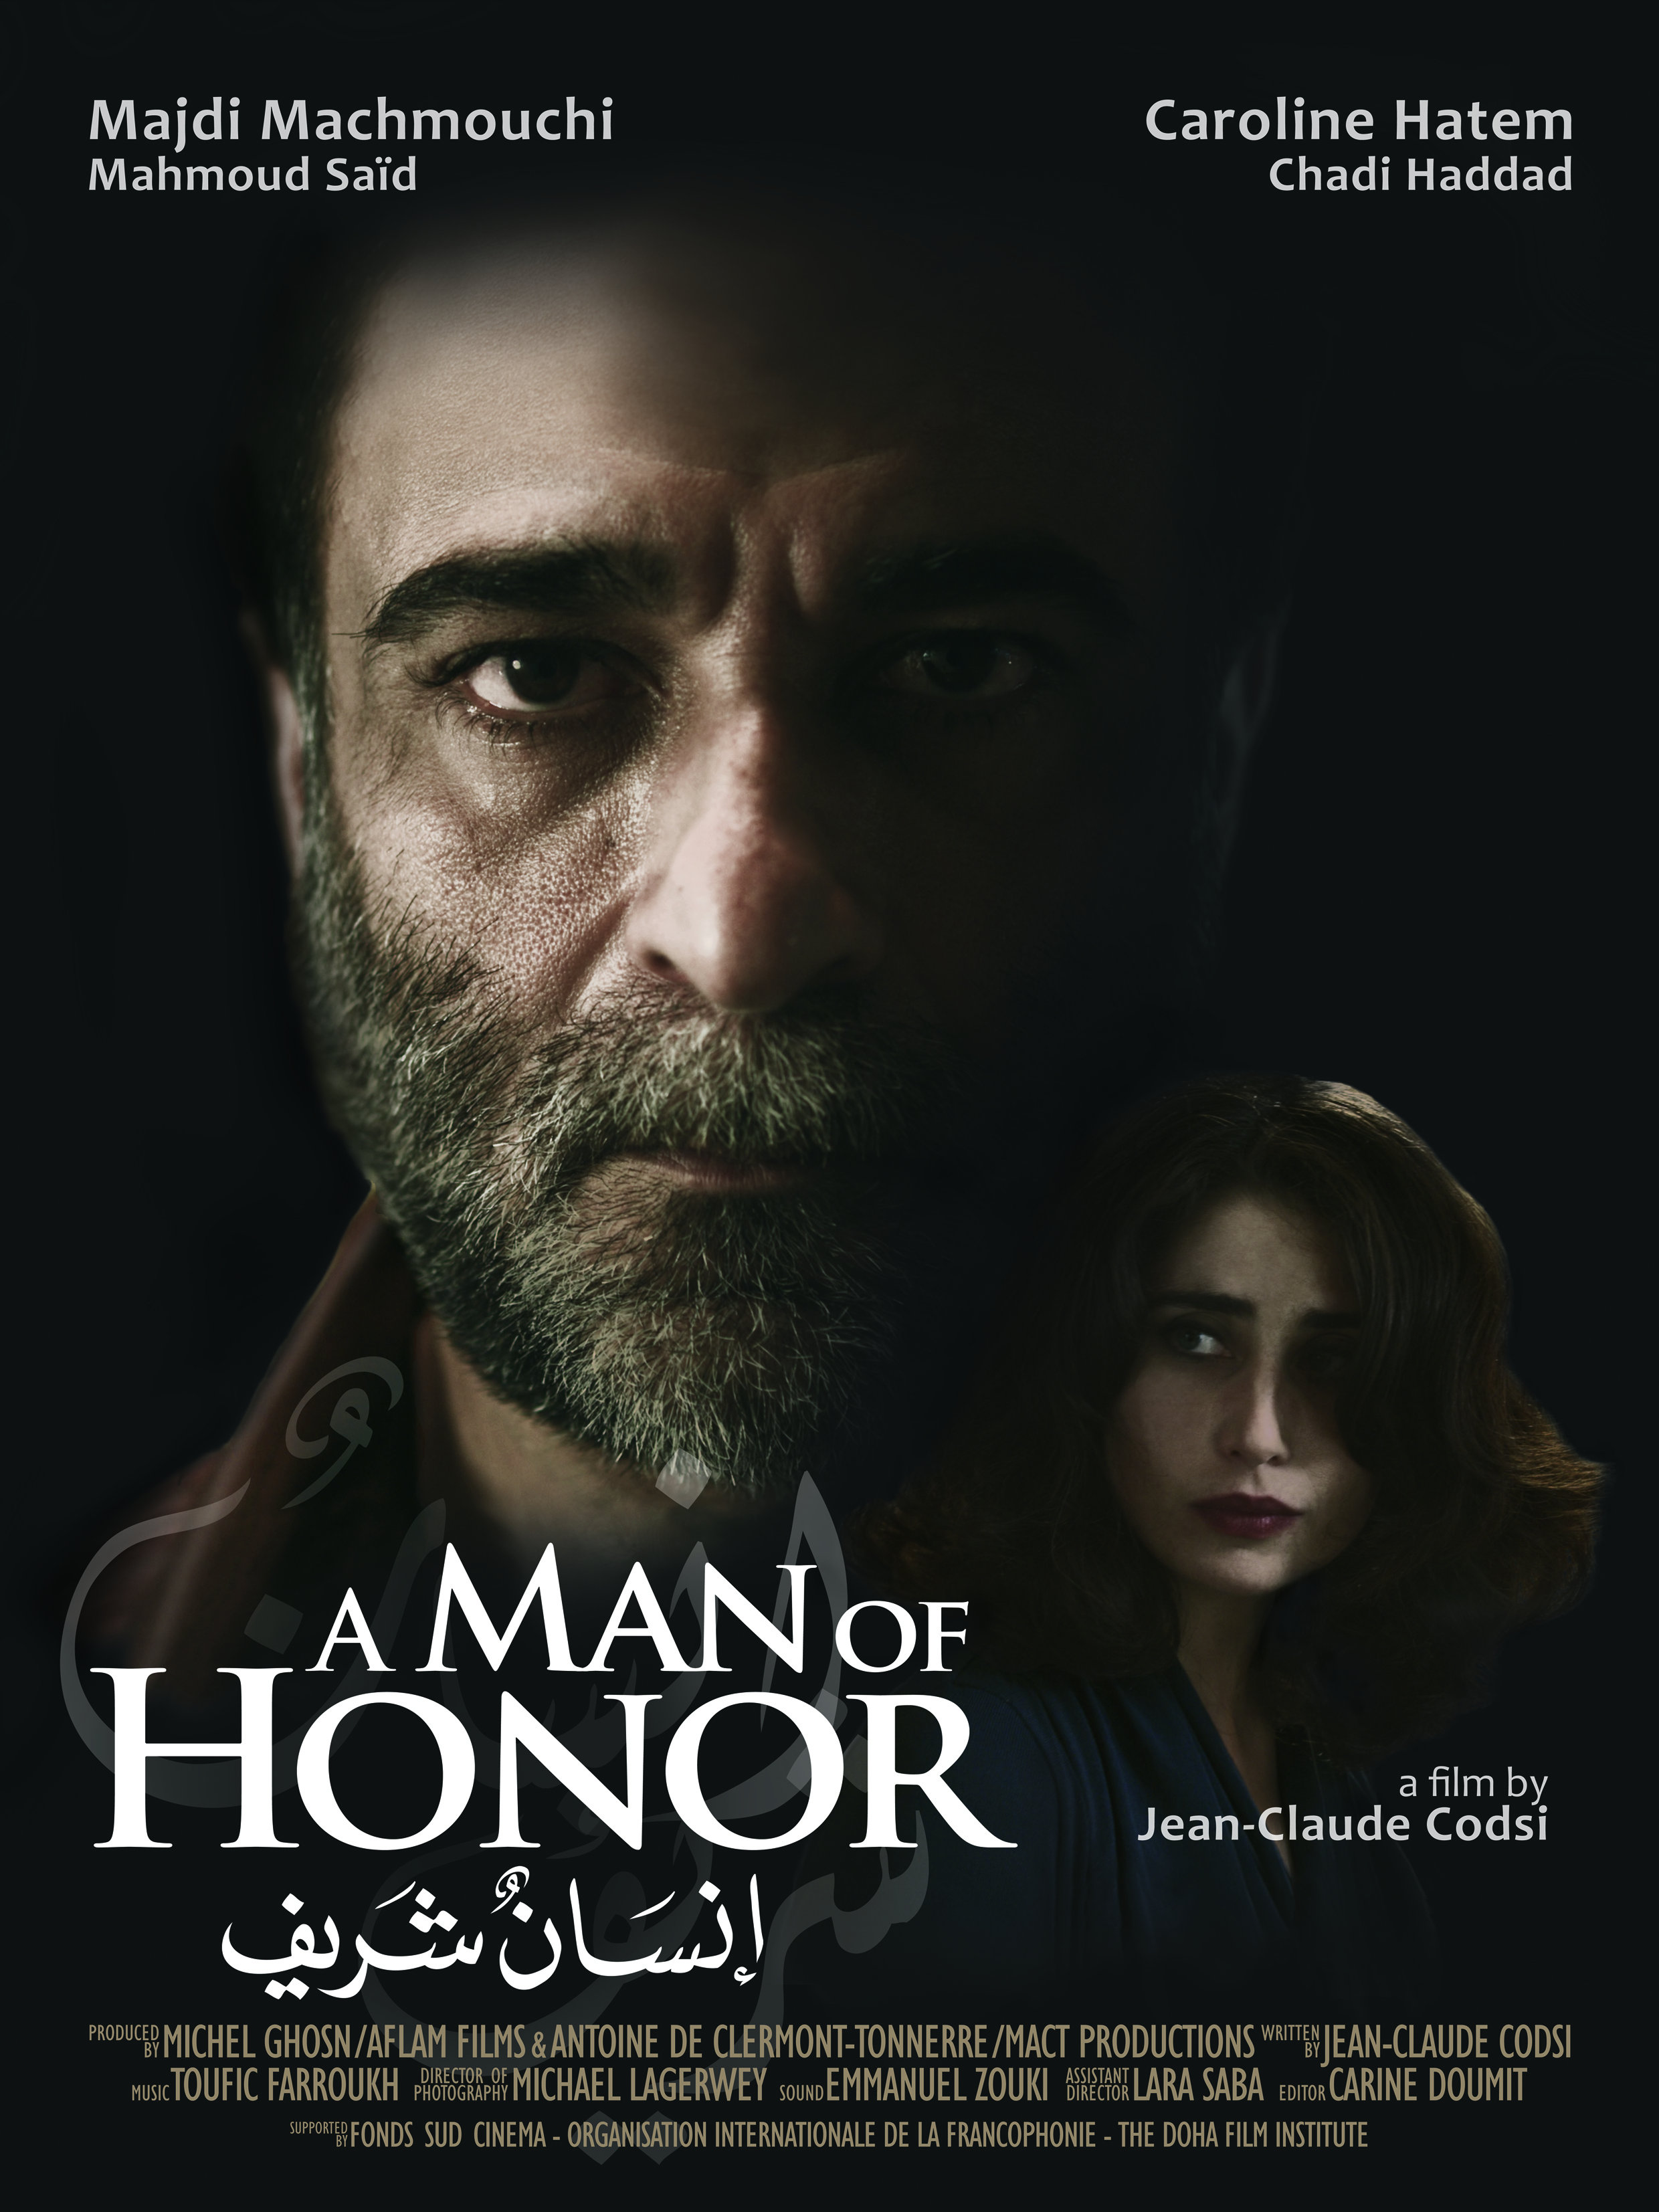 being a man of honor